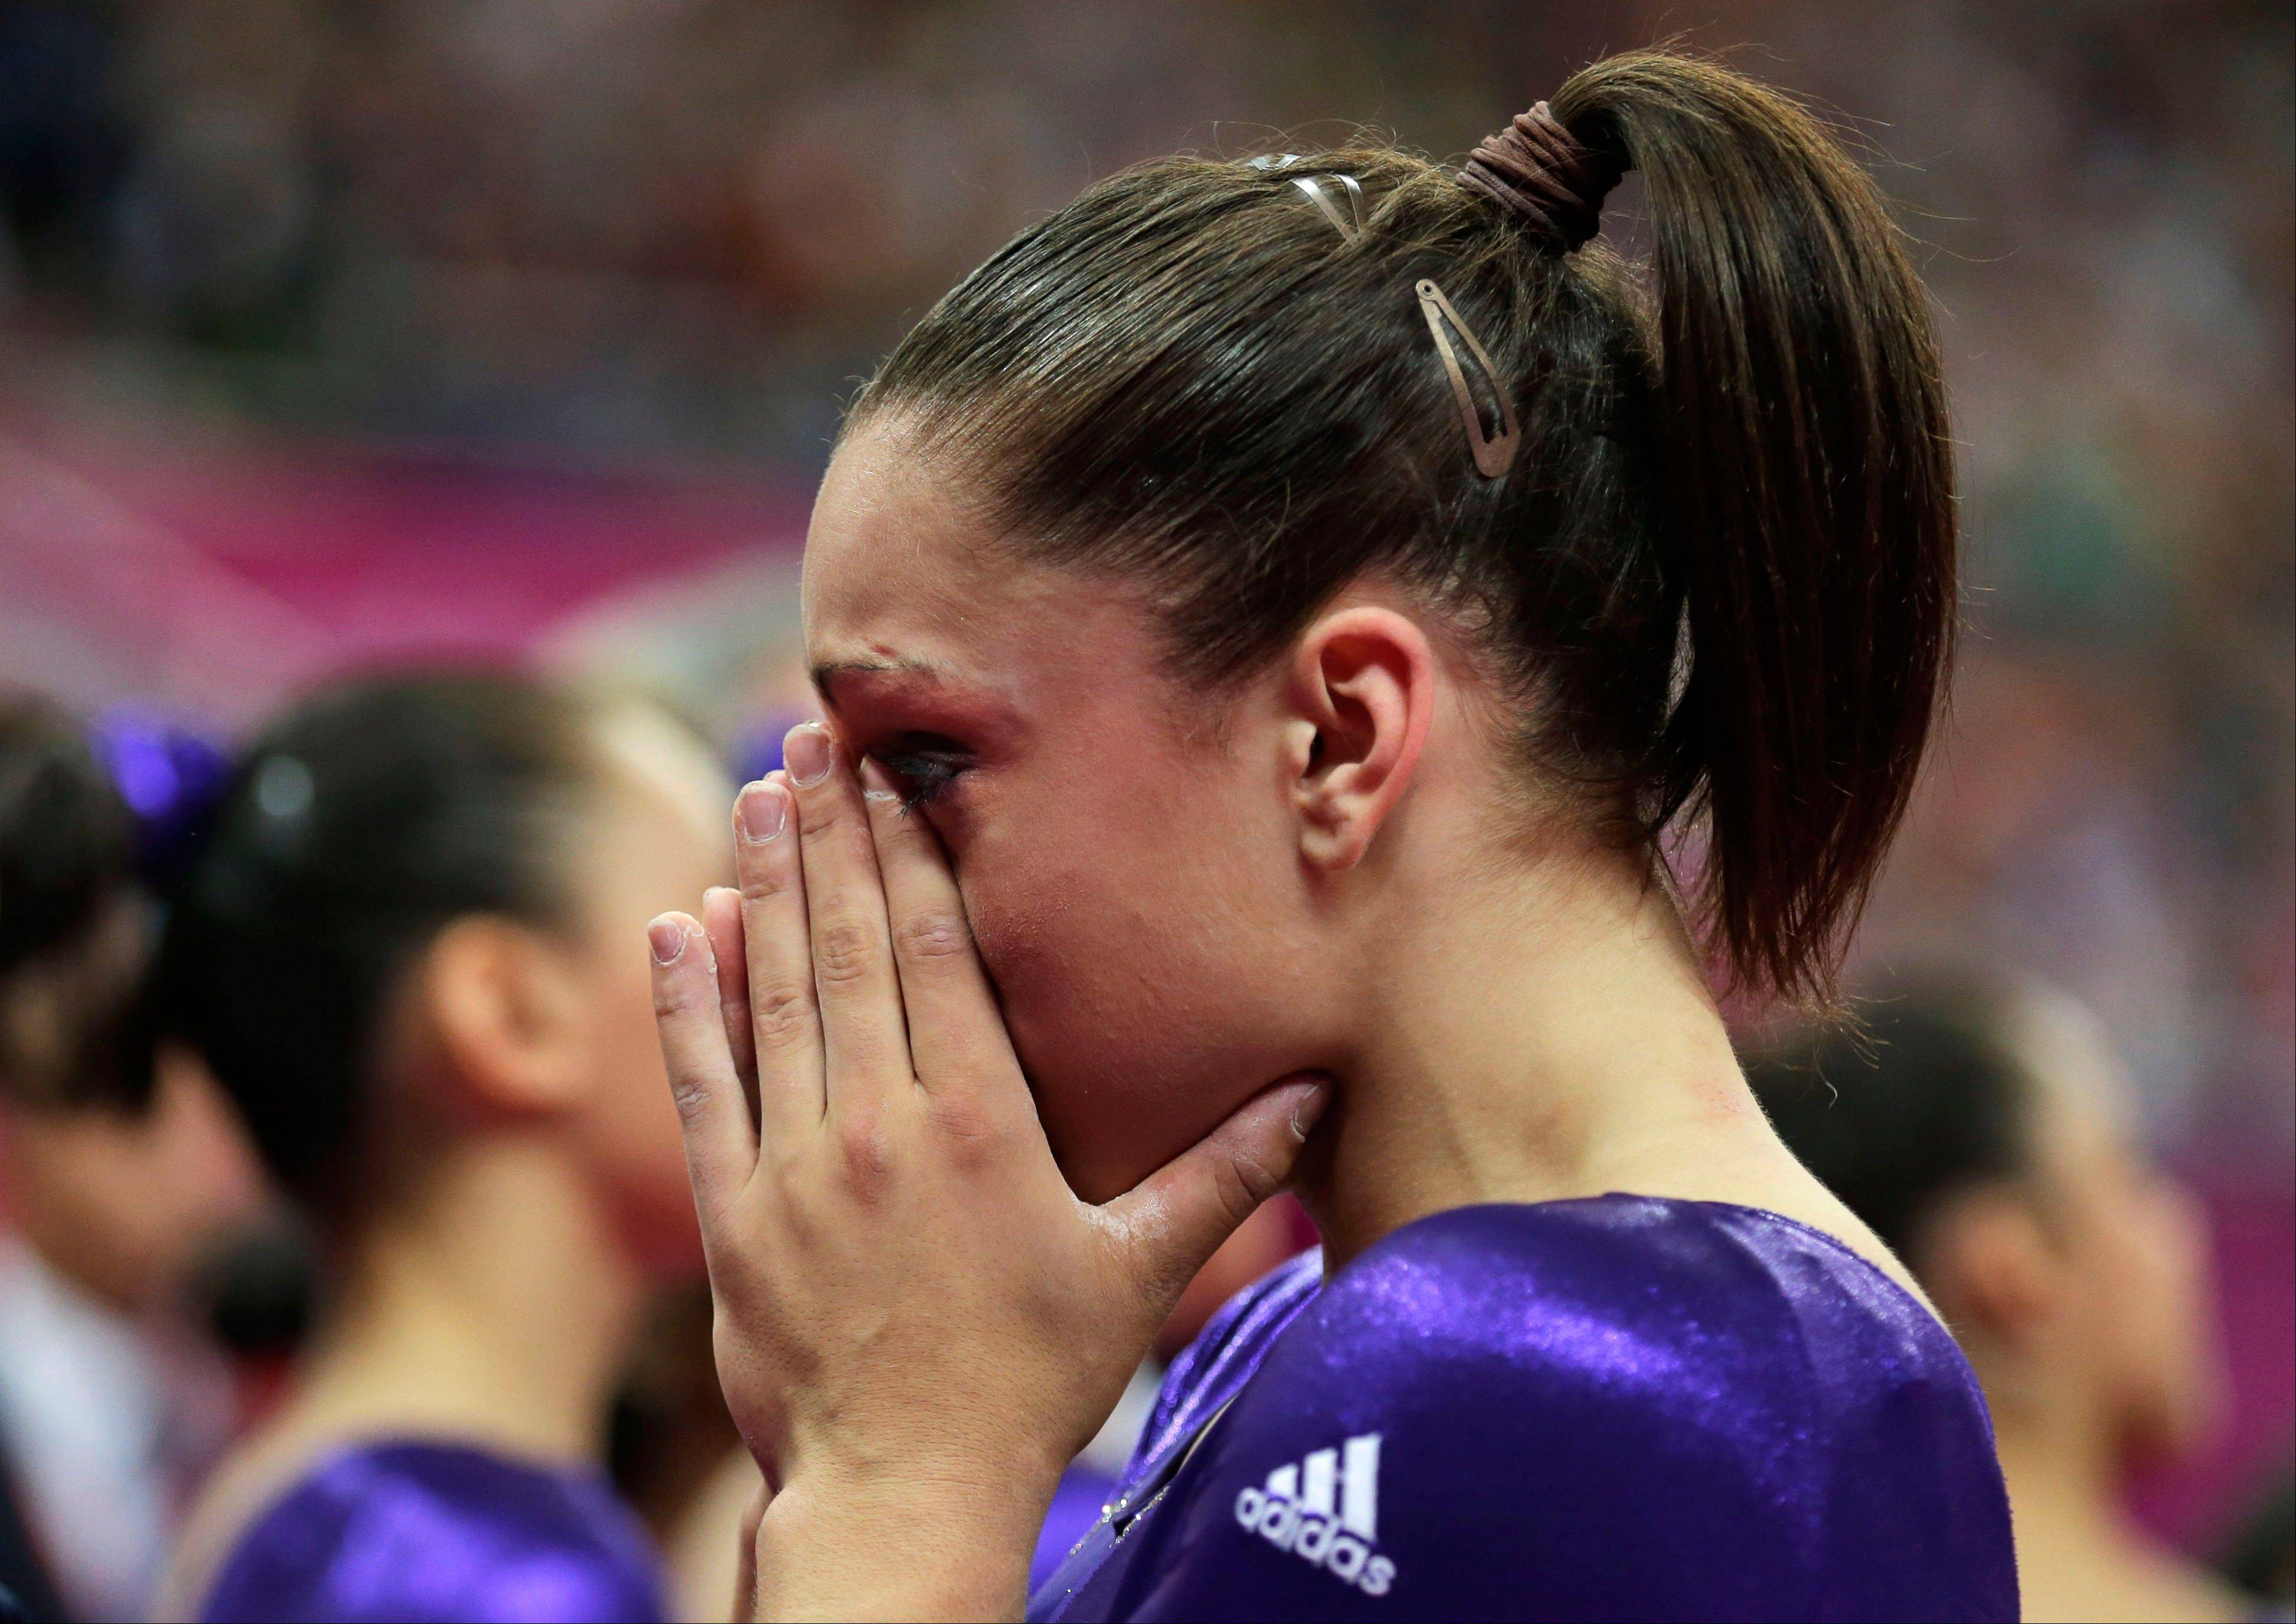 U.S. gymnast Jordyn Wieber cries Sunday after failing to qualify for the women�s all-around finals during the Artistic Gymnastics women�s qualification at the 2012 Summer Olympics in London.